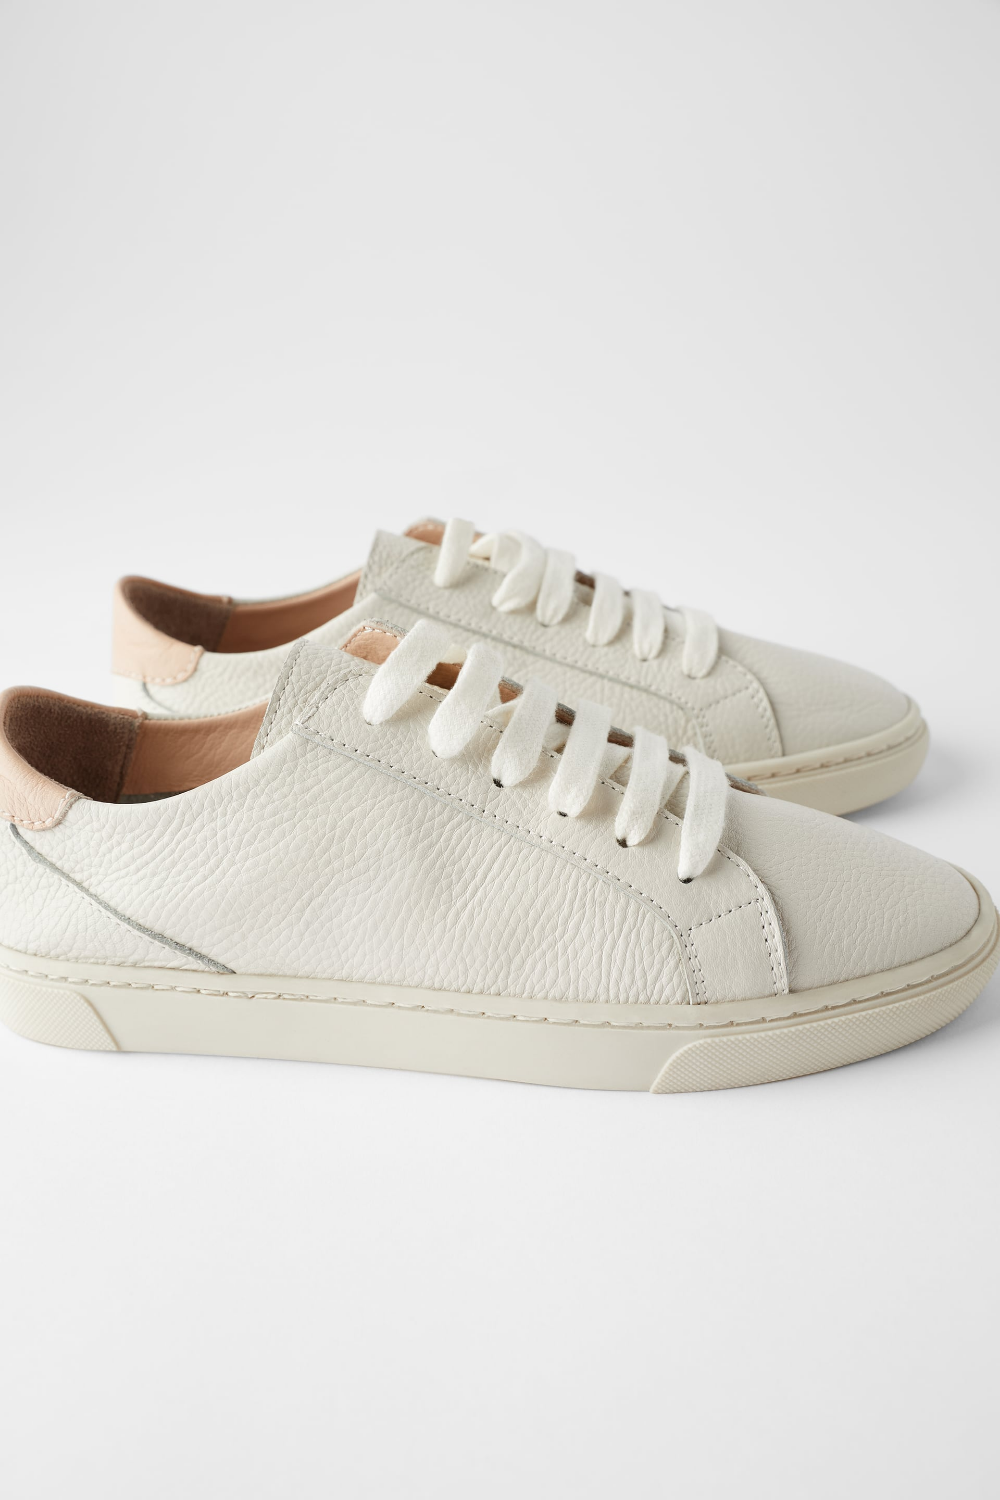 SOFT LEATHER SNEAKERS - View all-SHOES